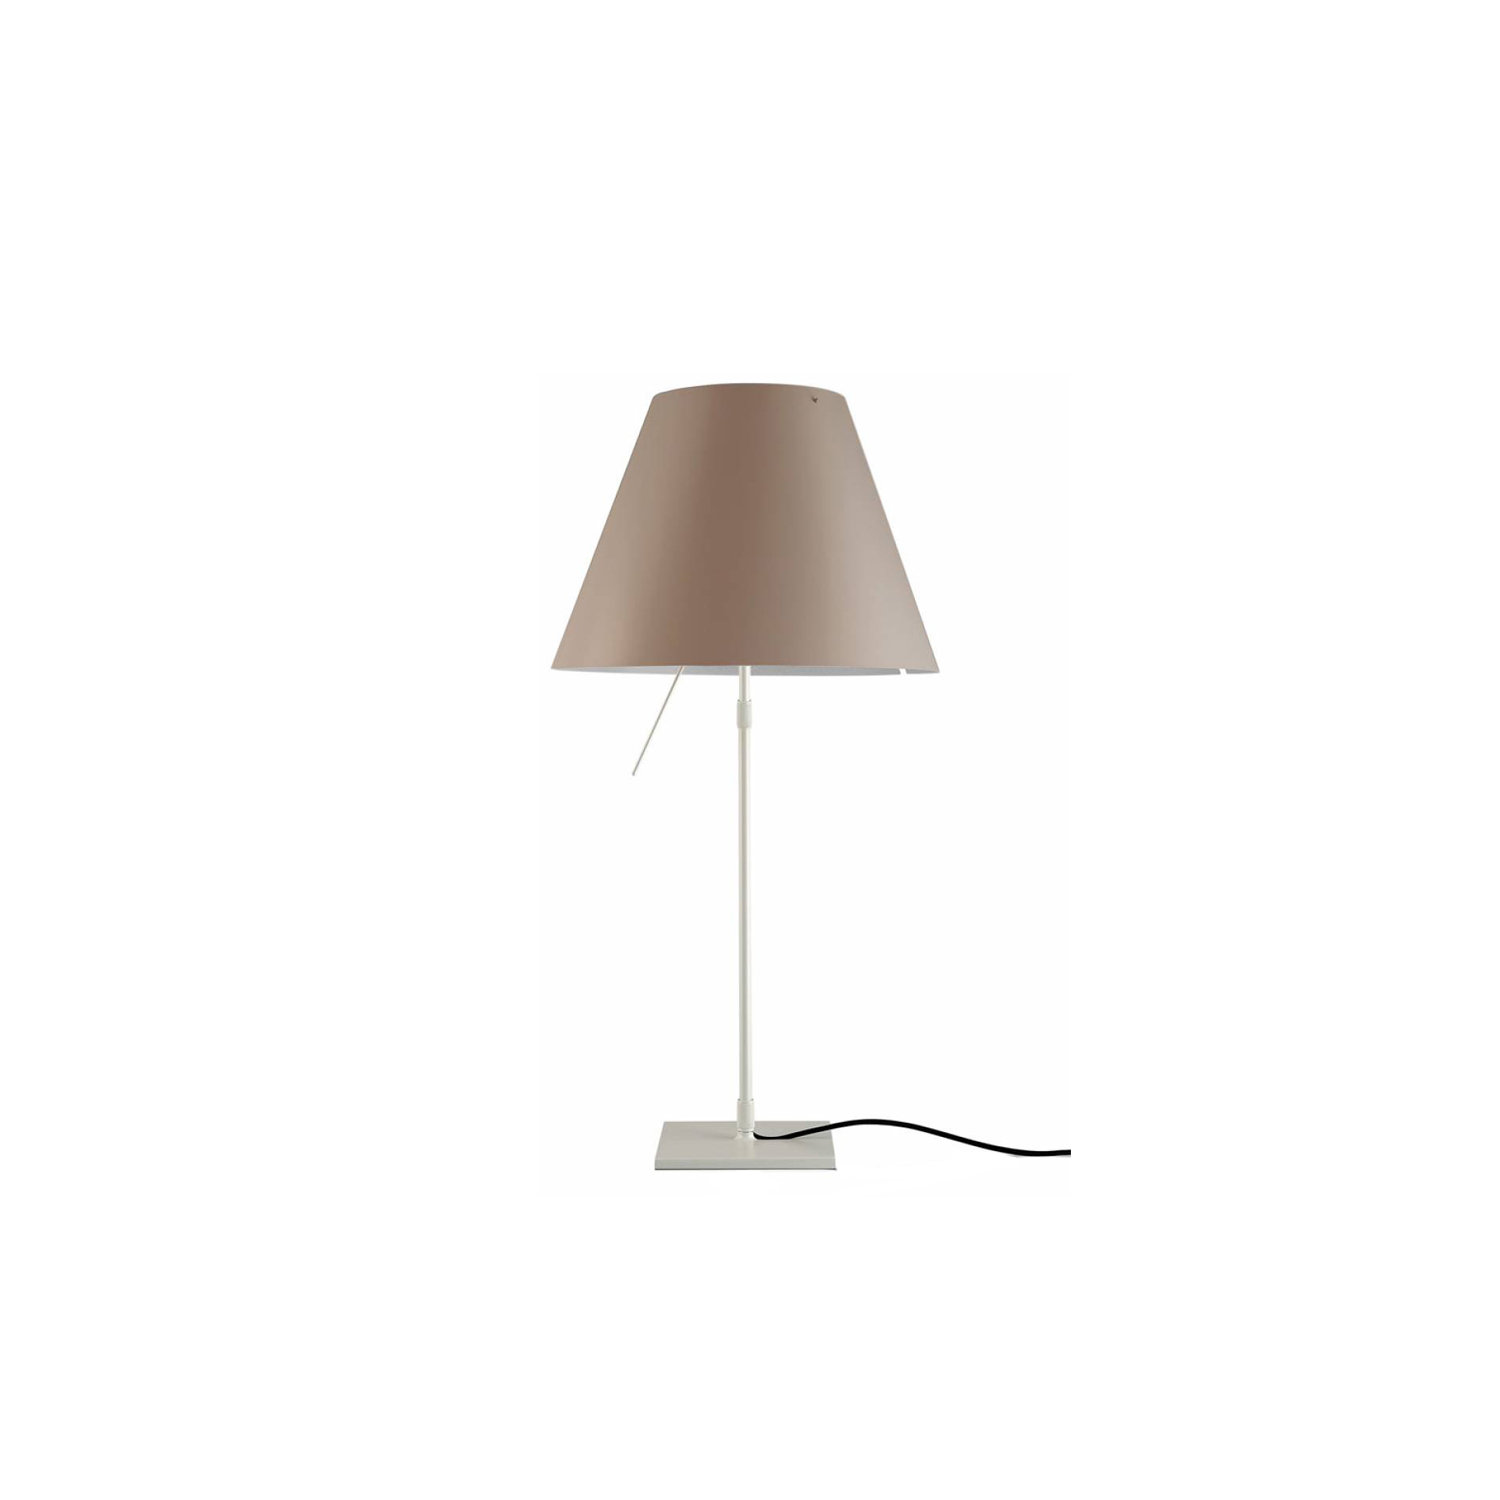 Costanza Table Lamp - Blending tradition and technology, Costanza reinterprets a classic image in a contemporary way. The interchangeable polycarbonate lampshade emits warm, pleasant light. The sensorial dimmer rod turns the lamp on and off, alternating four light intensity levels. Thanks to low energy consumption and the long life of the light source, the LED module with an aluminium heat sink works perfectly with the classic polycarbonate lampshade.  Shades come in different finishes, please enquire for more information  | Matter of Stuff